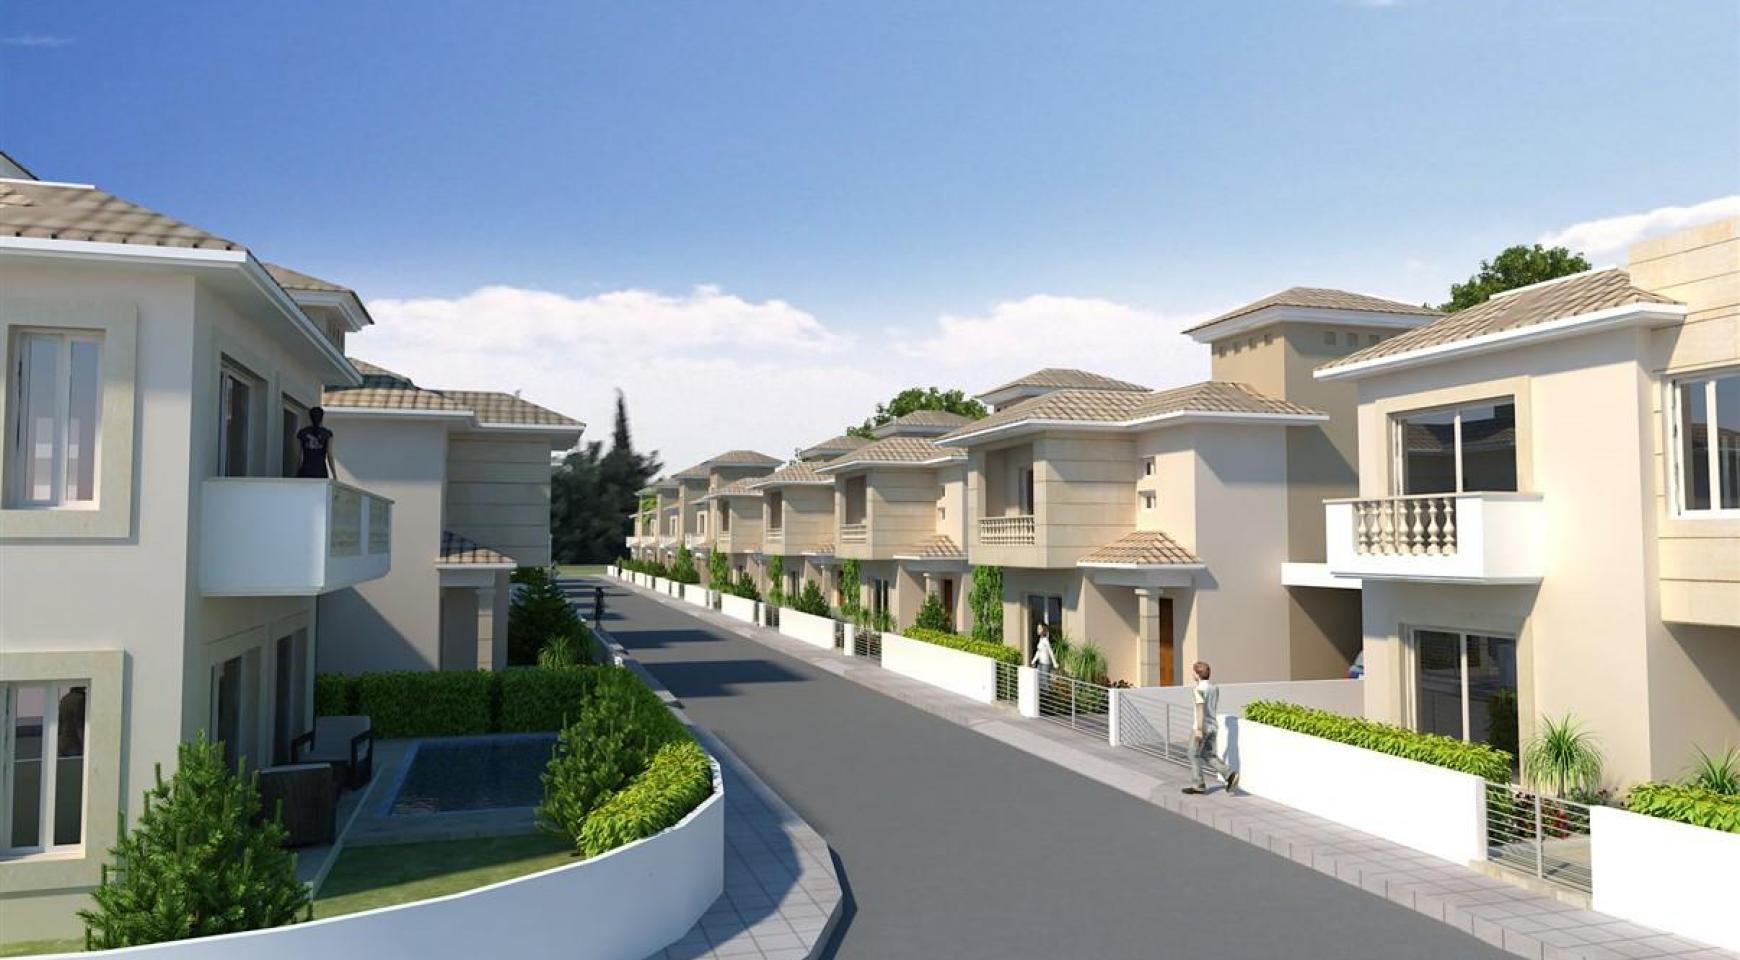 3 Bedroom Villa in New Project in Paphos - 7